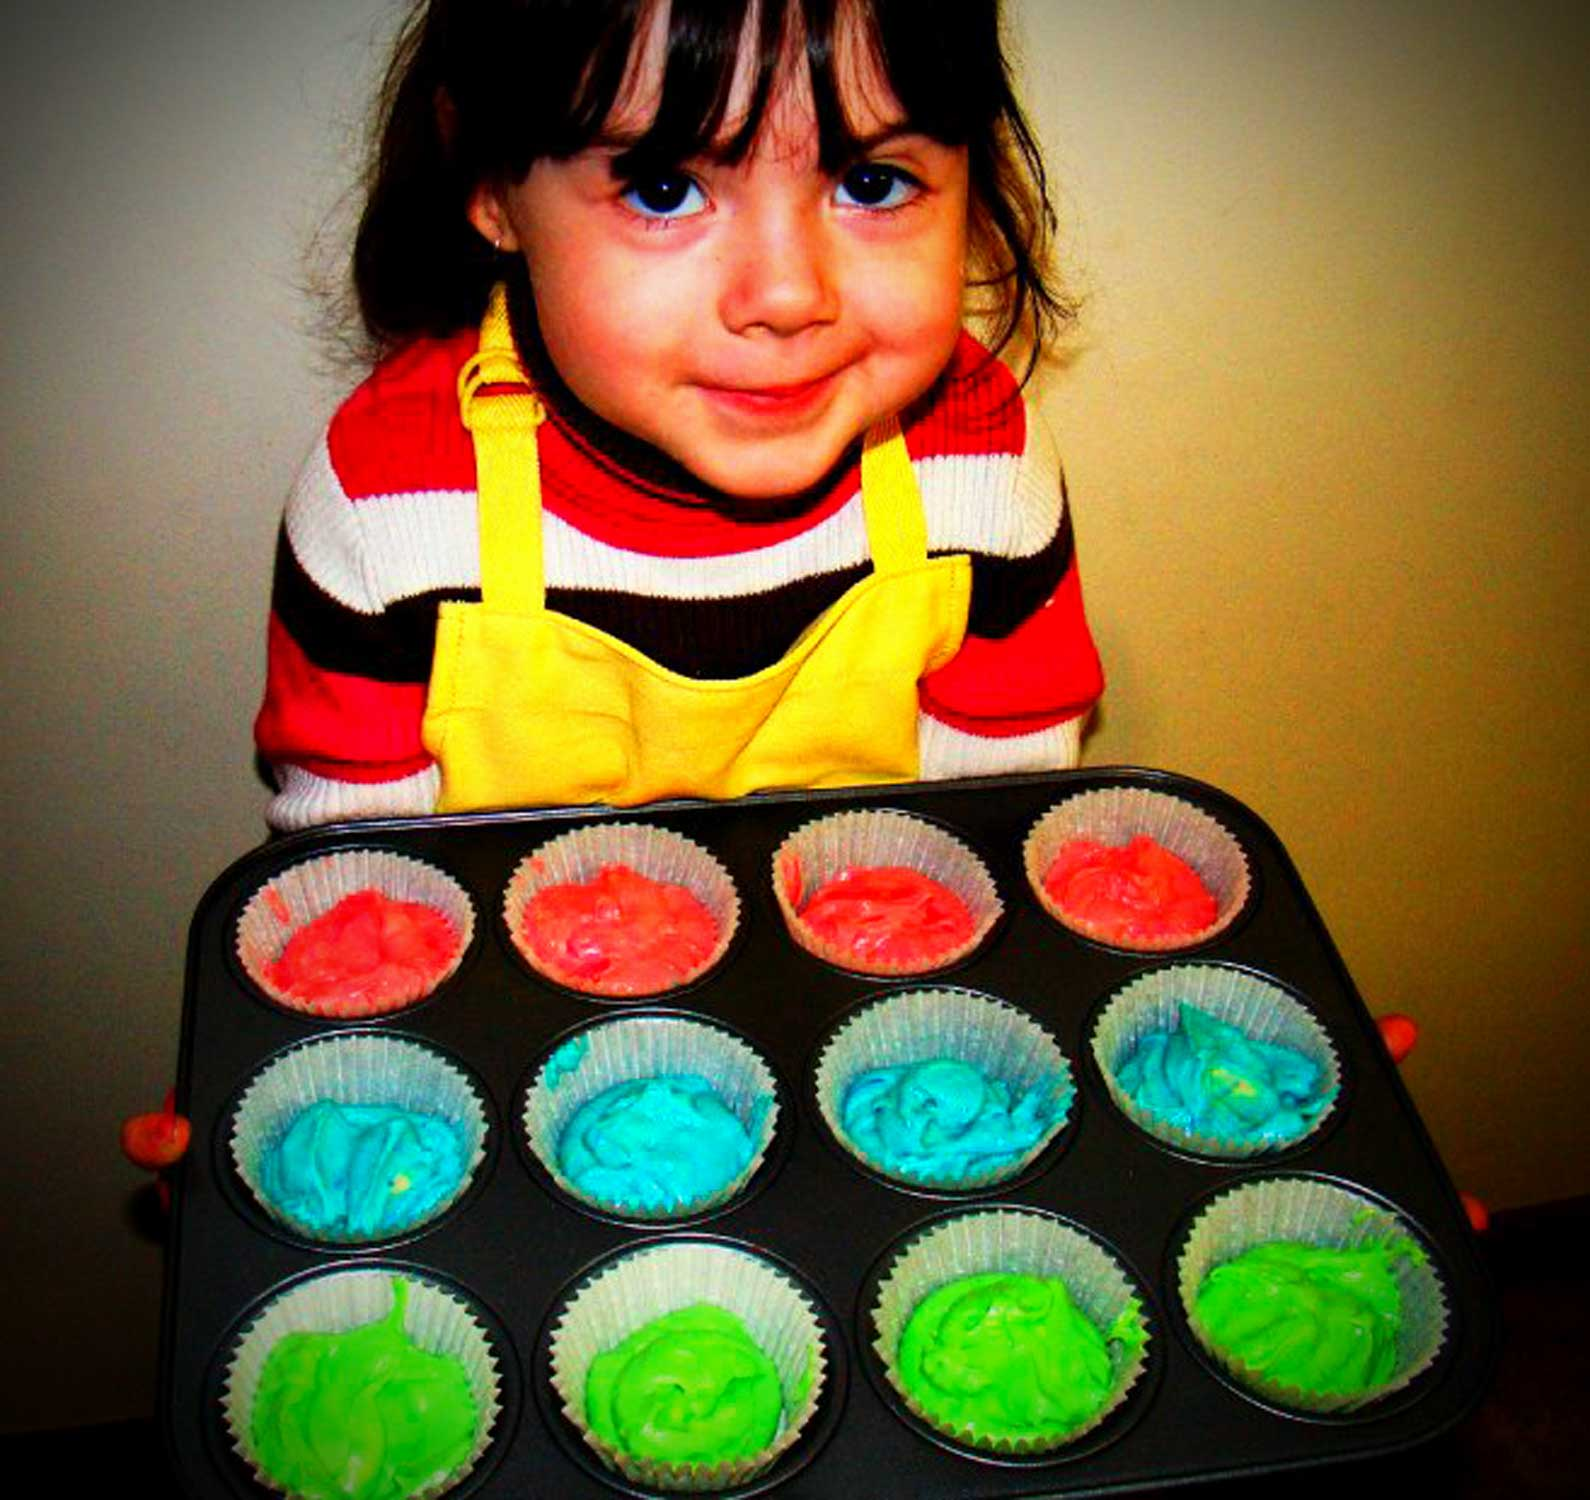 Tookii things to do with kids cupcakes one of the activities for kids